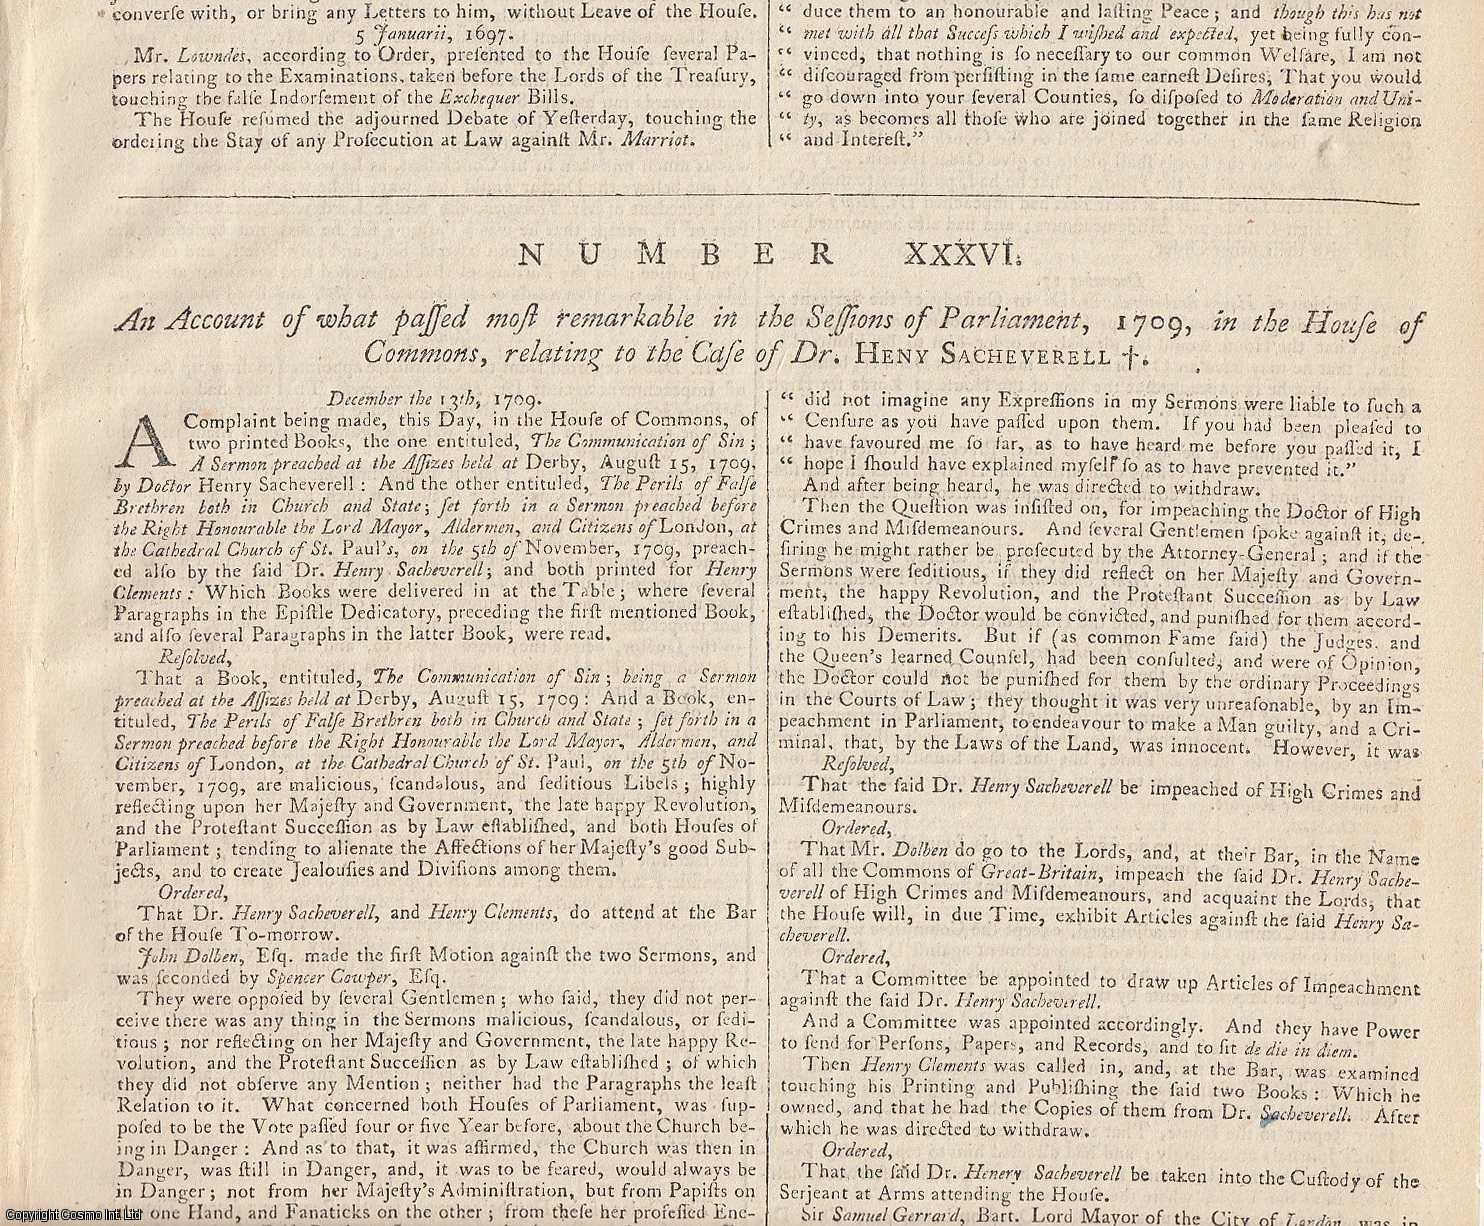 ATTACK ON DISSENTERS.  An Account of what passed most remarkable in the Sessions of Parliament, 1709, in the House of Commons, relating to the Case of Dr. Henry Sacheverell., [Trial].